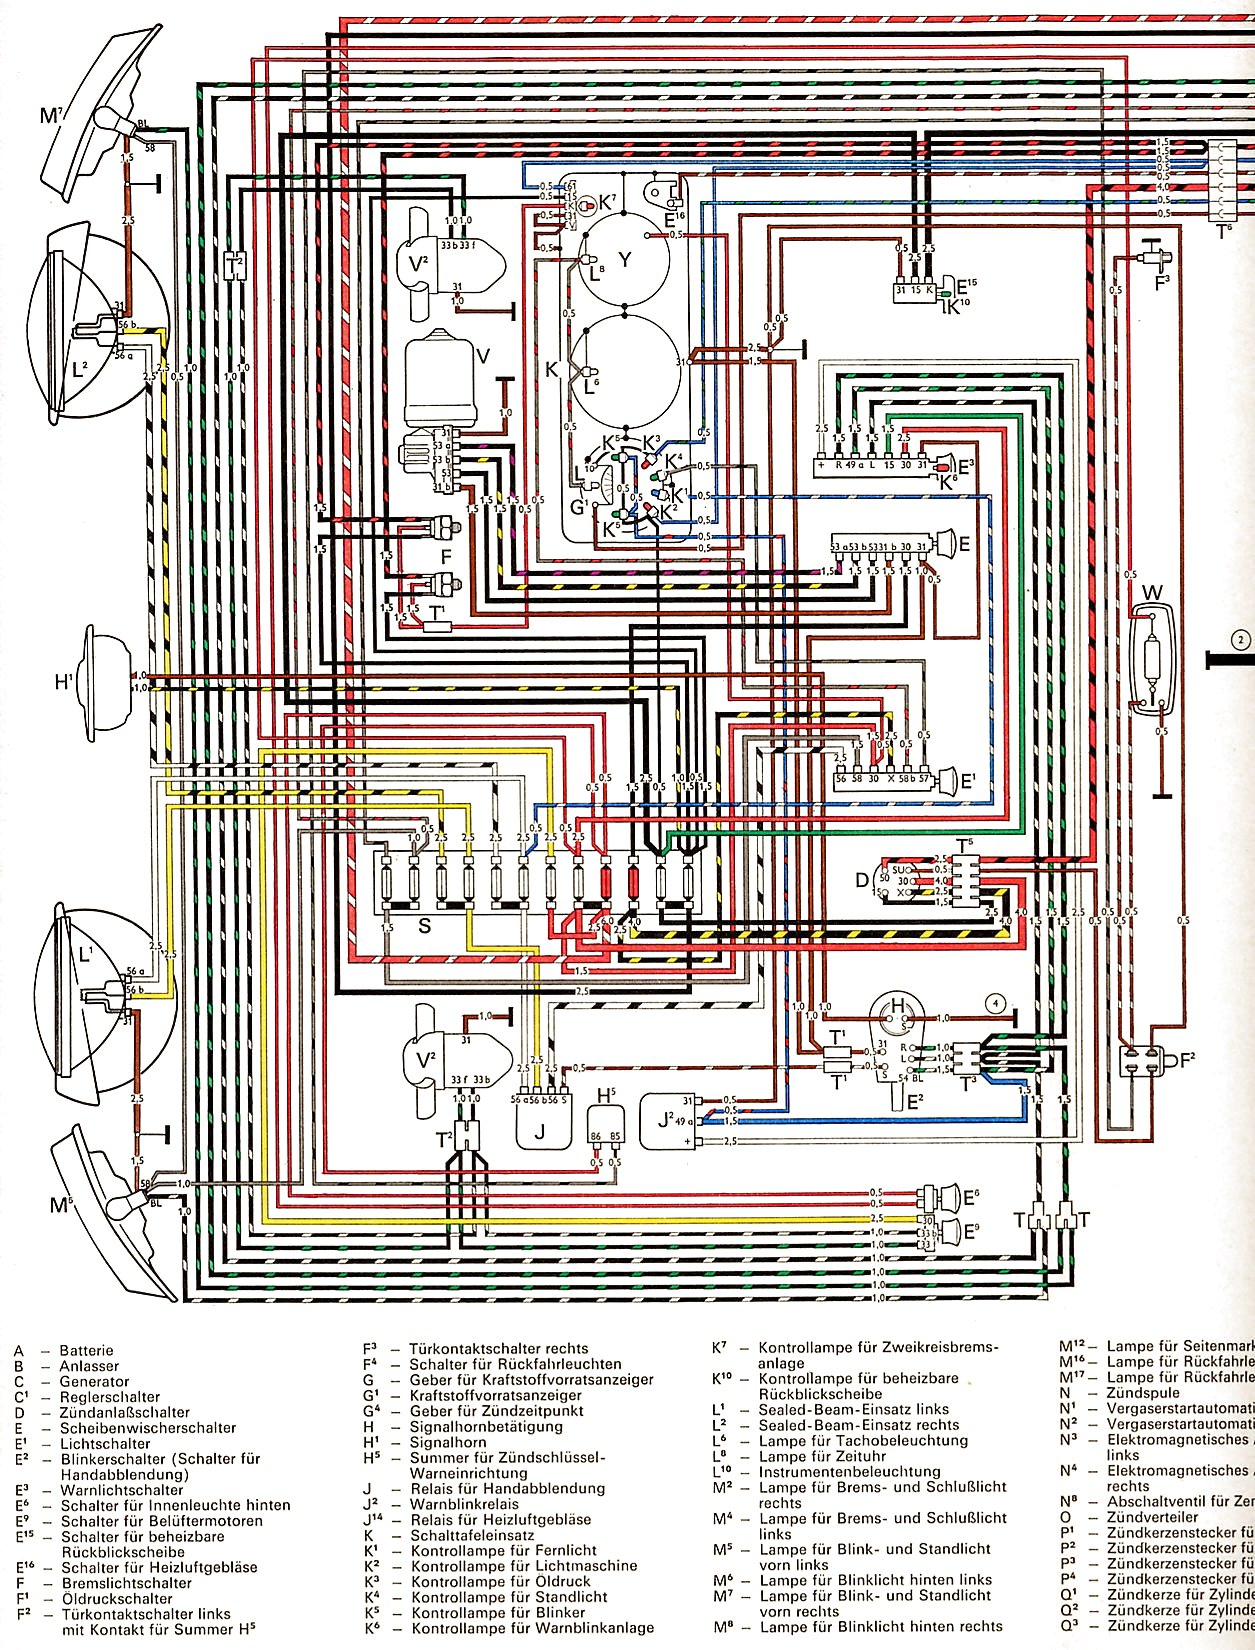 Vw Bus And Other Wiring Diagrams August 2013 Electronic Circuit Schematics 1972 Usa De Y 1 2